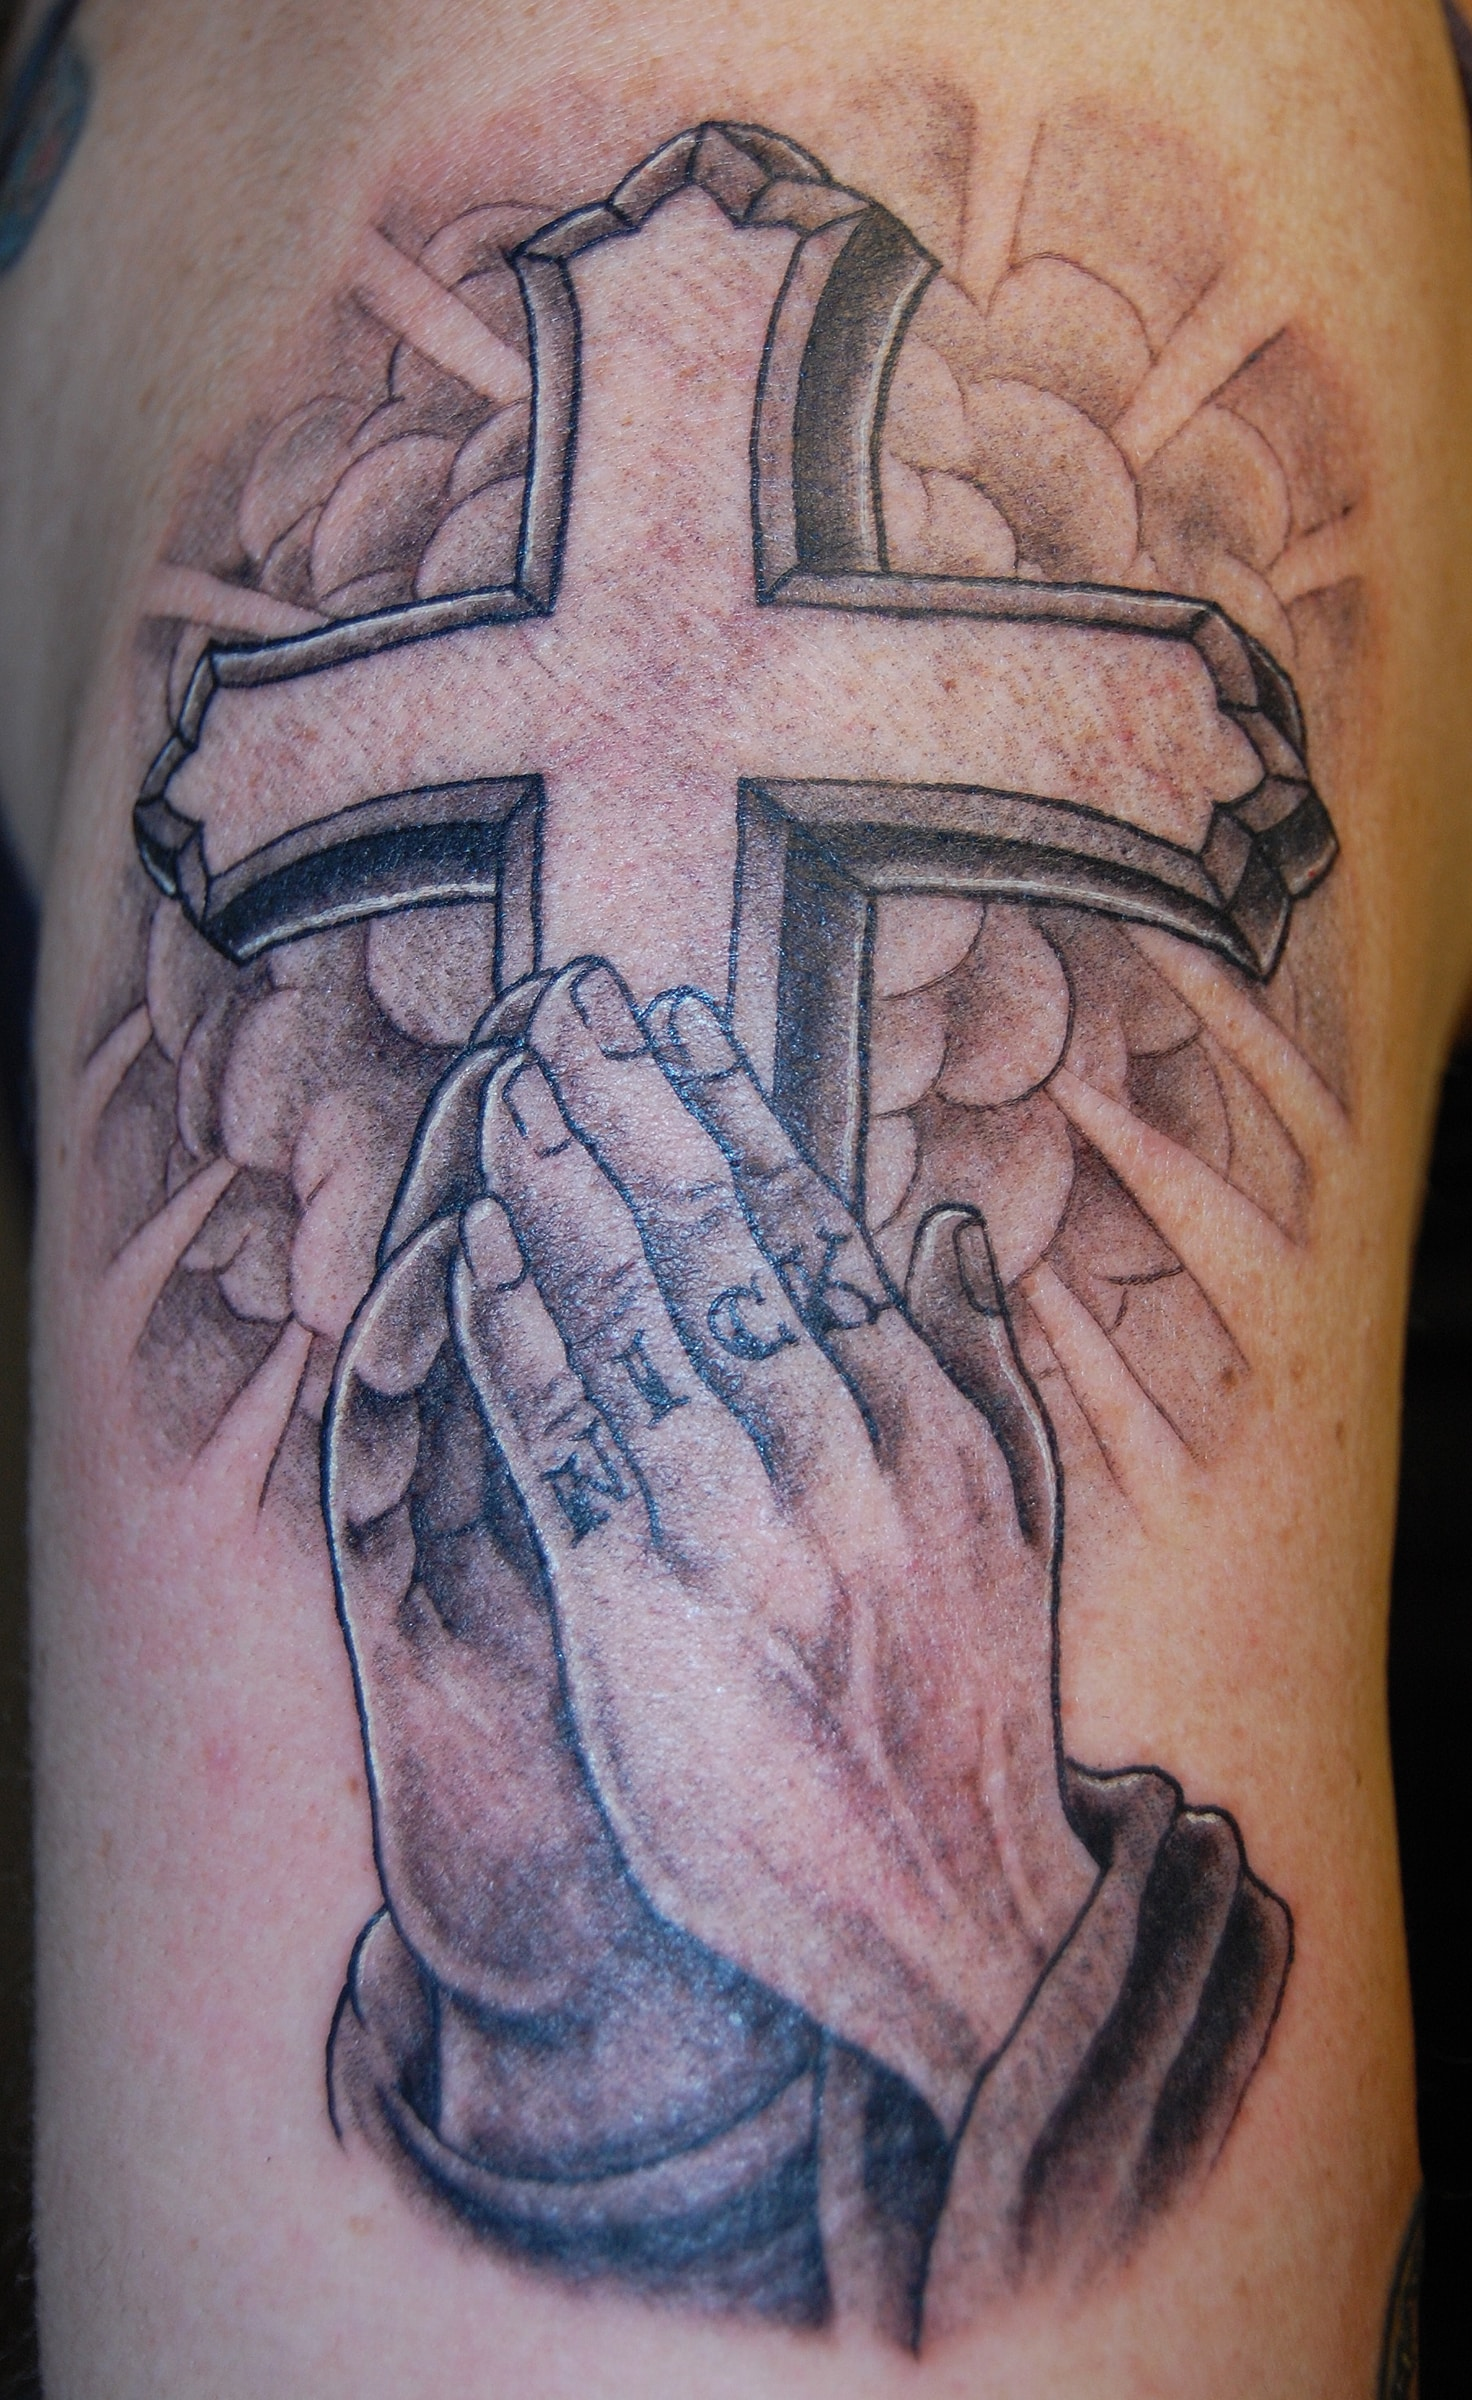 rip prayer hands tattoo